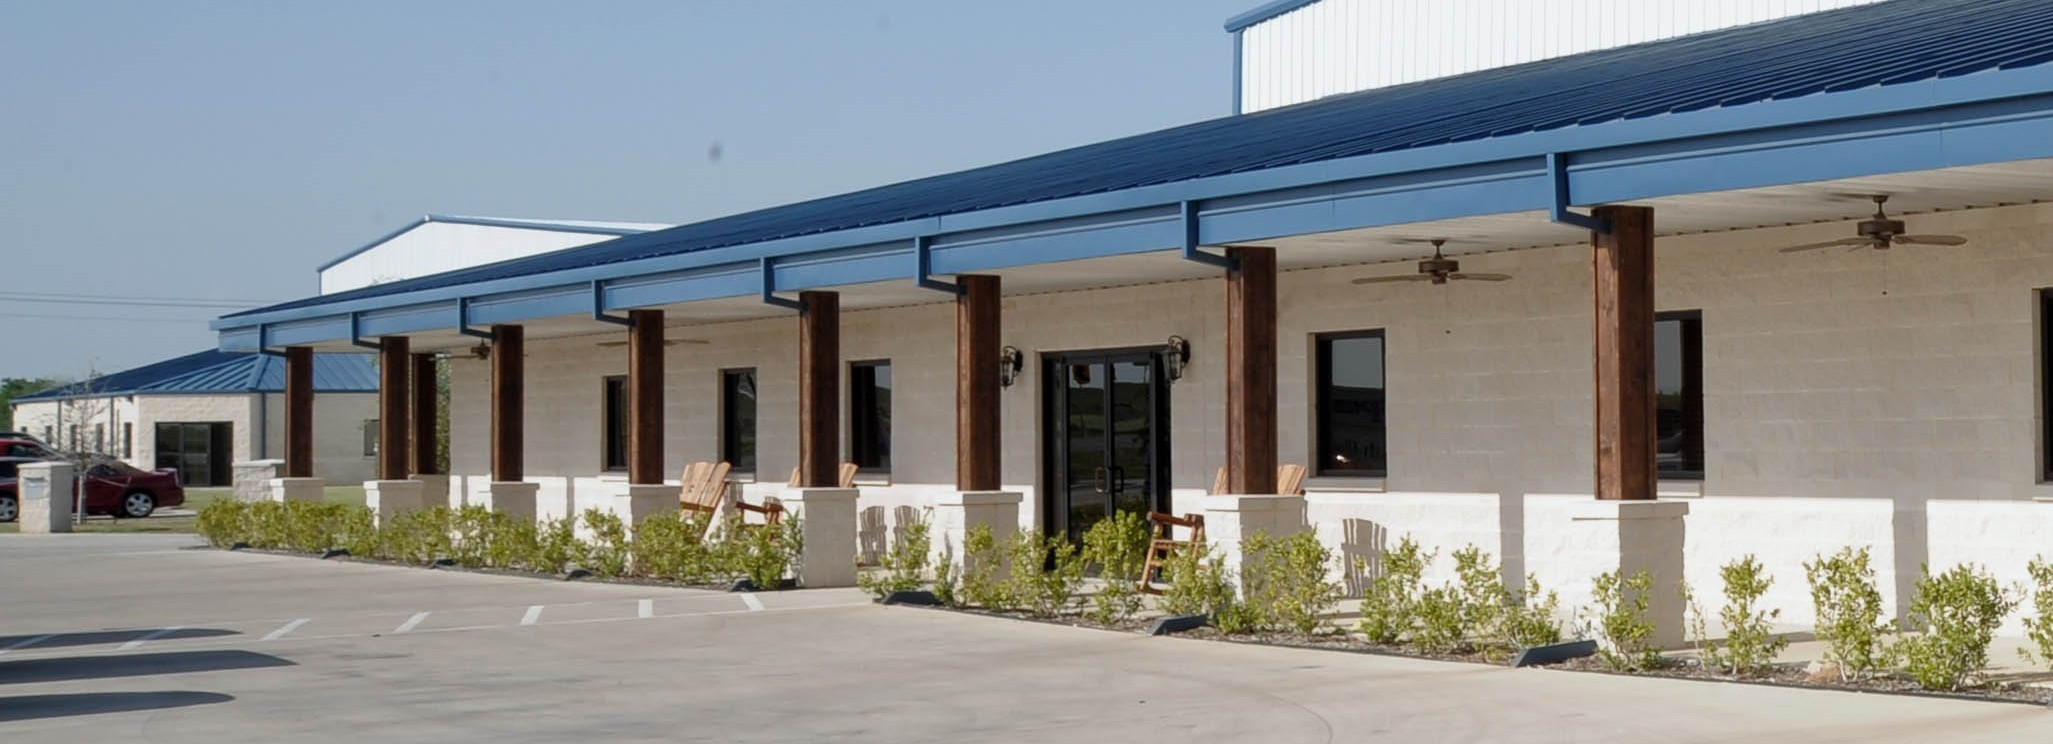 Southern Packaging Industrial Construction Exterior Entrance